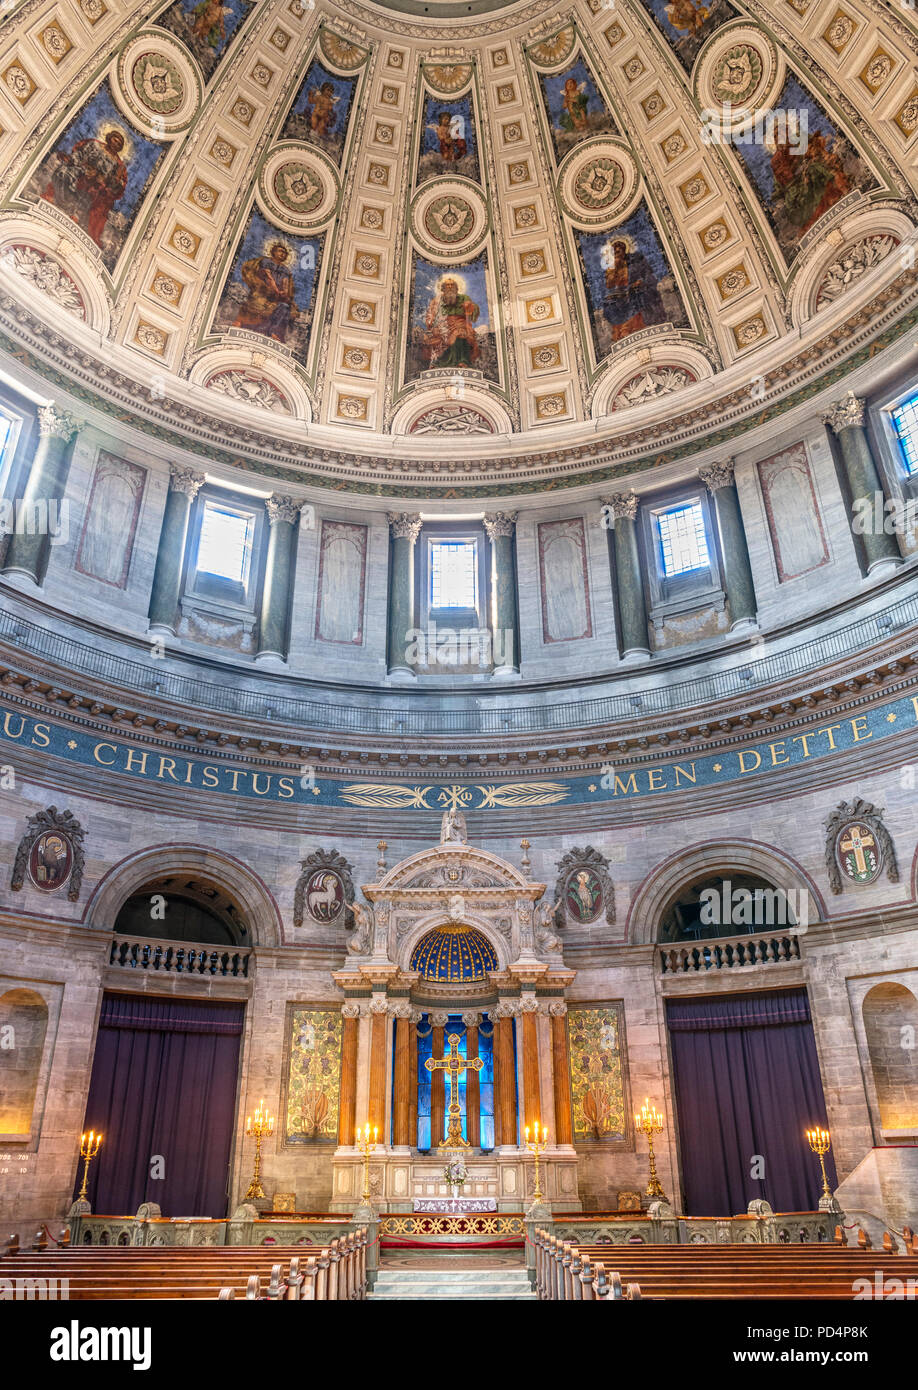 Interior of Frederiks Kirke (Frederik's Church), known as Marmorkirken (The Marble Church),  Frederiksstaden, Copenhagen, Denmark - Stock Image